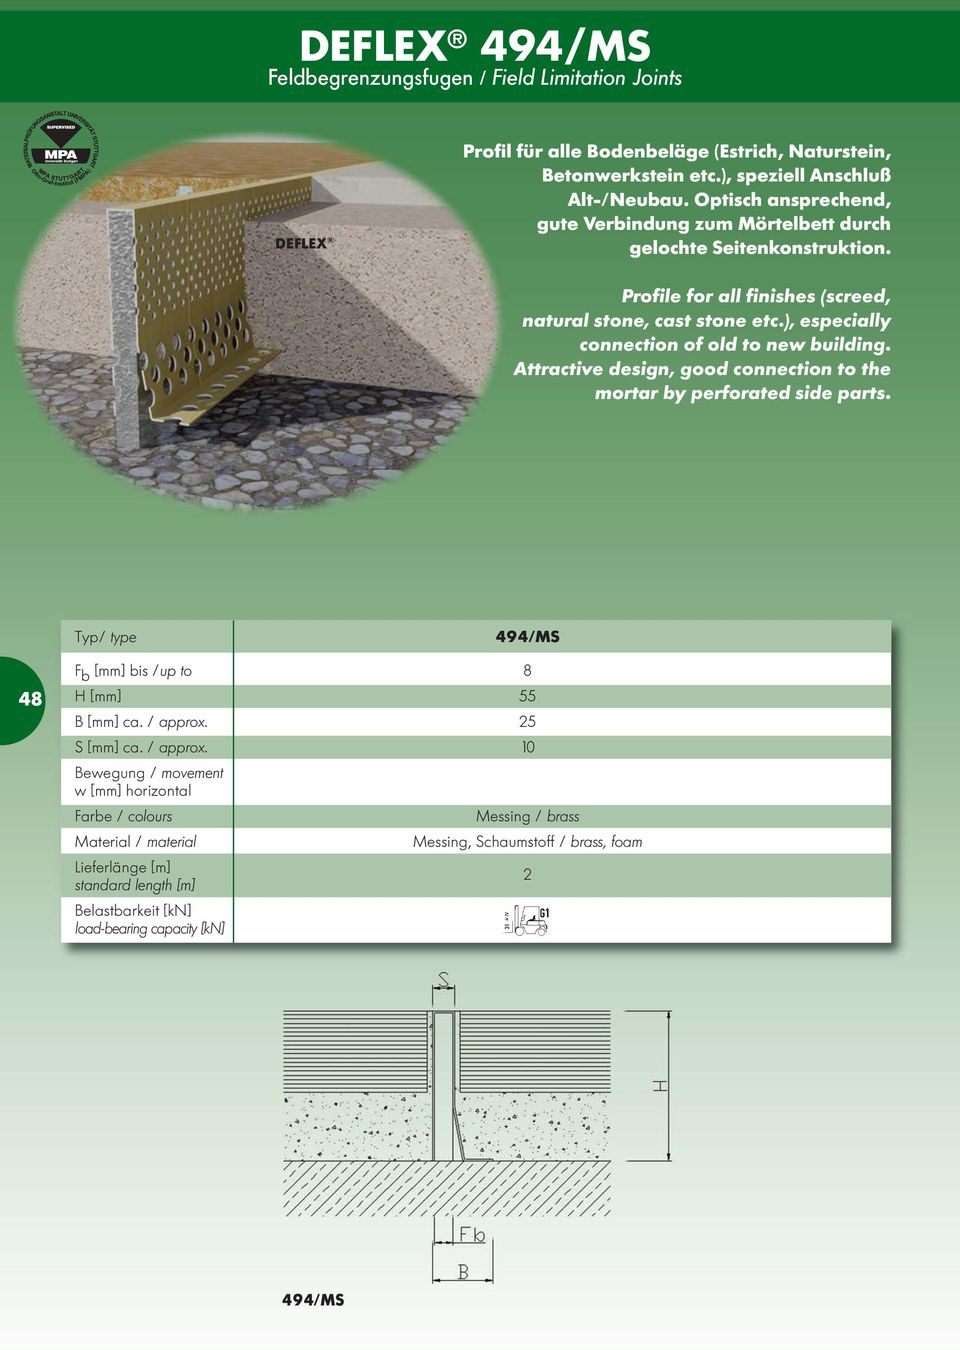 Profile for all finishes (screed, natural stone, cast stone etc.), especially connection of old to new building.